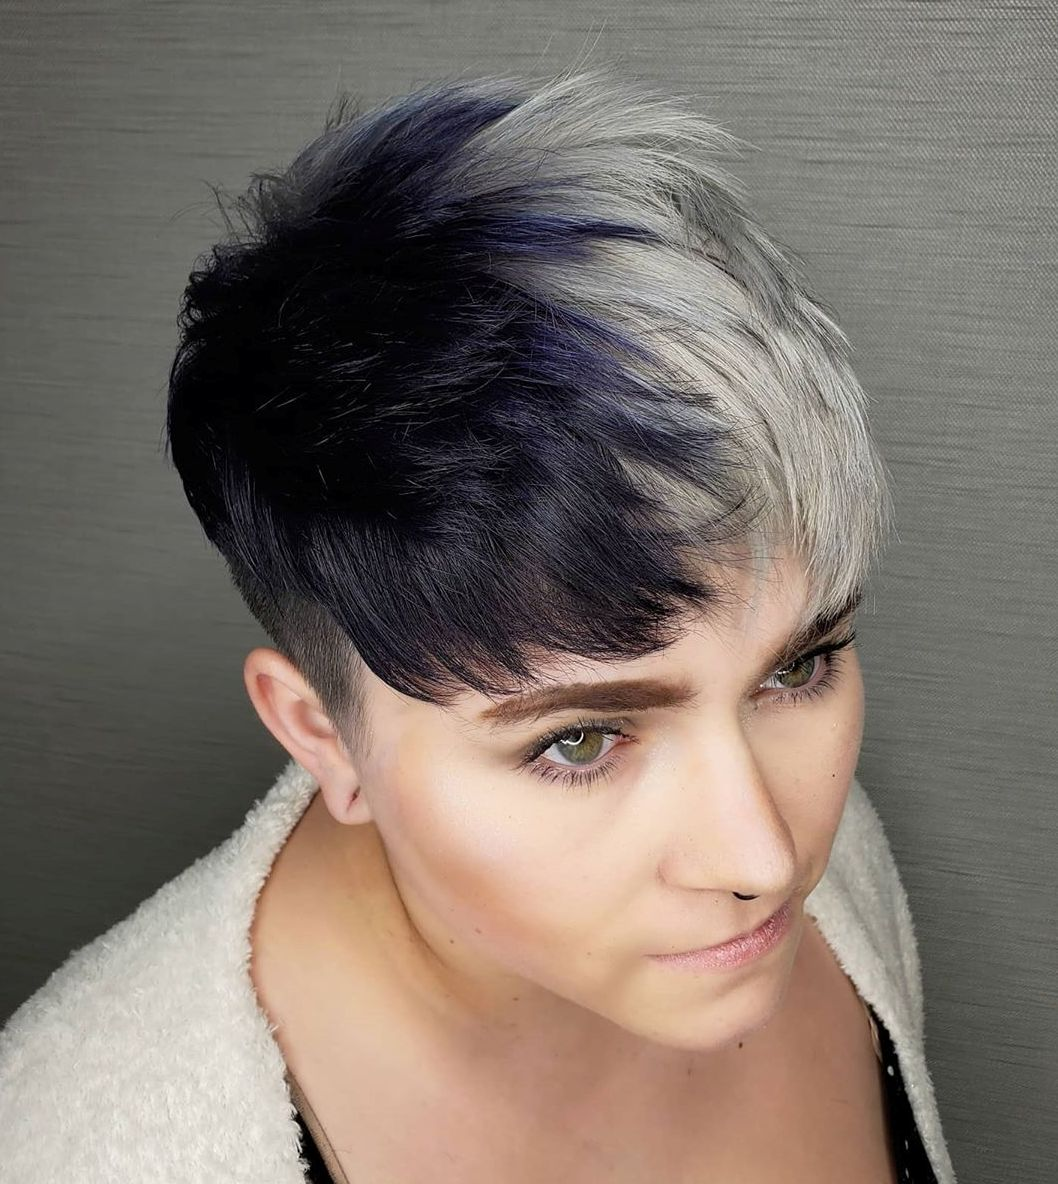 Two-Tone Short Hair Trendy Pixie